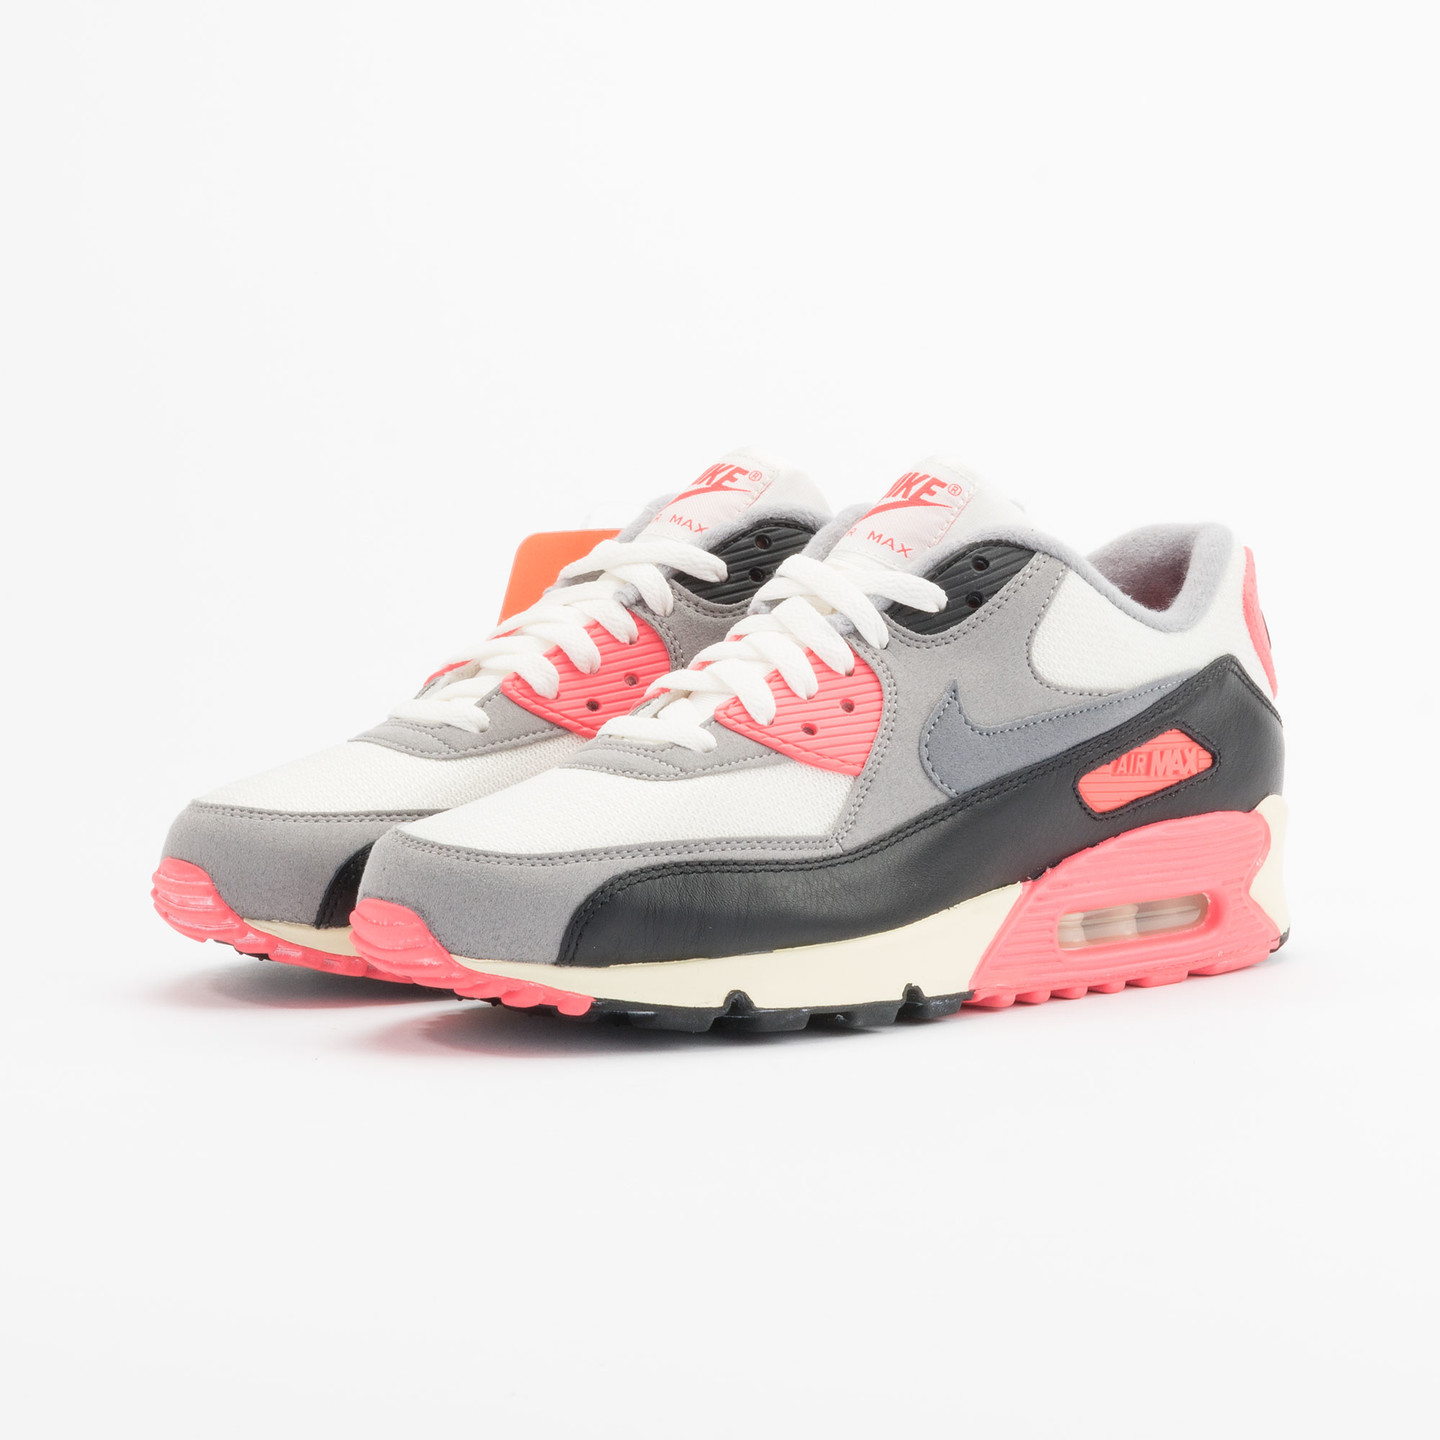 Nike Air Max 90 OG Vintage Infrared Sail/Cool Grey-Mdm Grey-Infrrd 543361-161-40